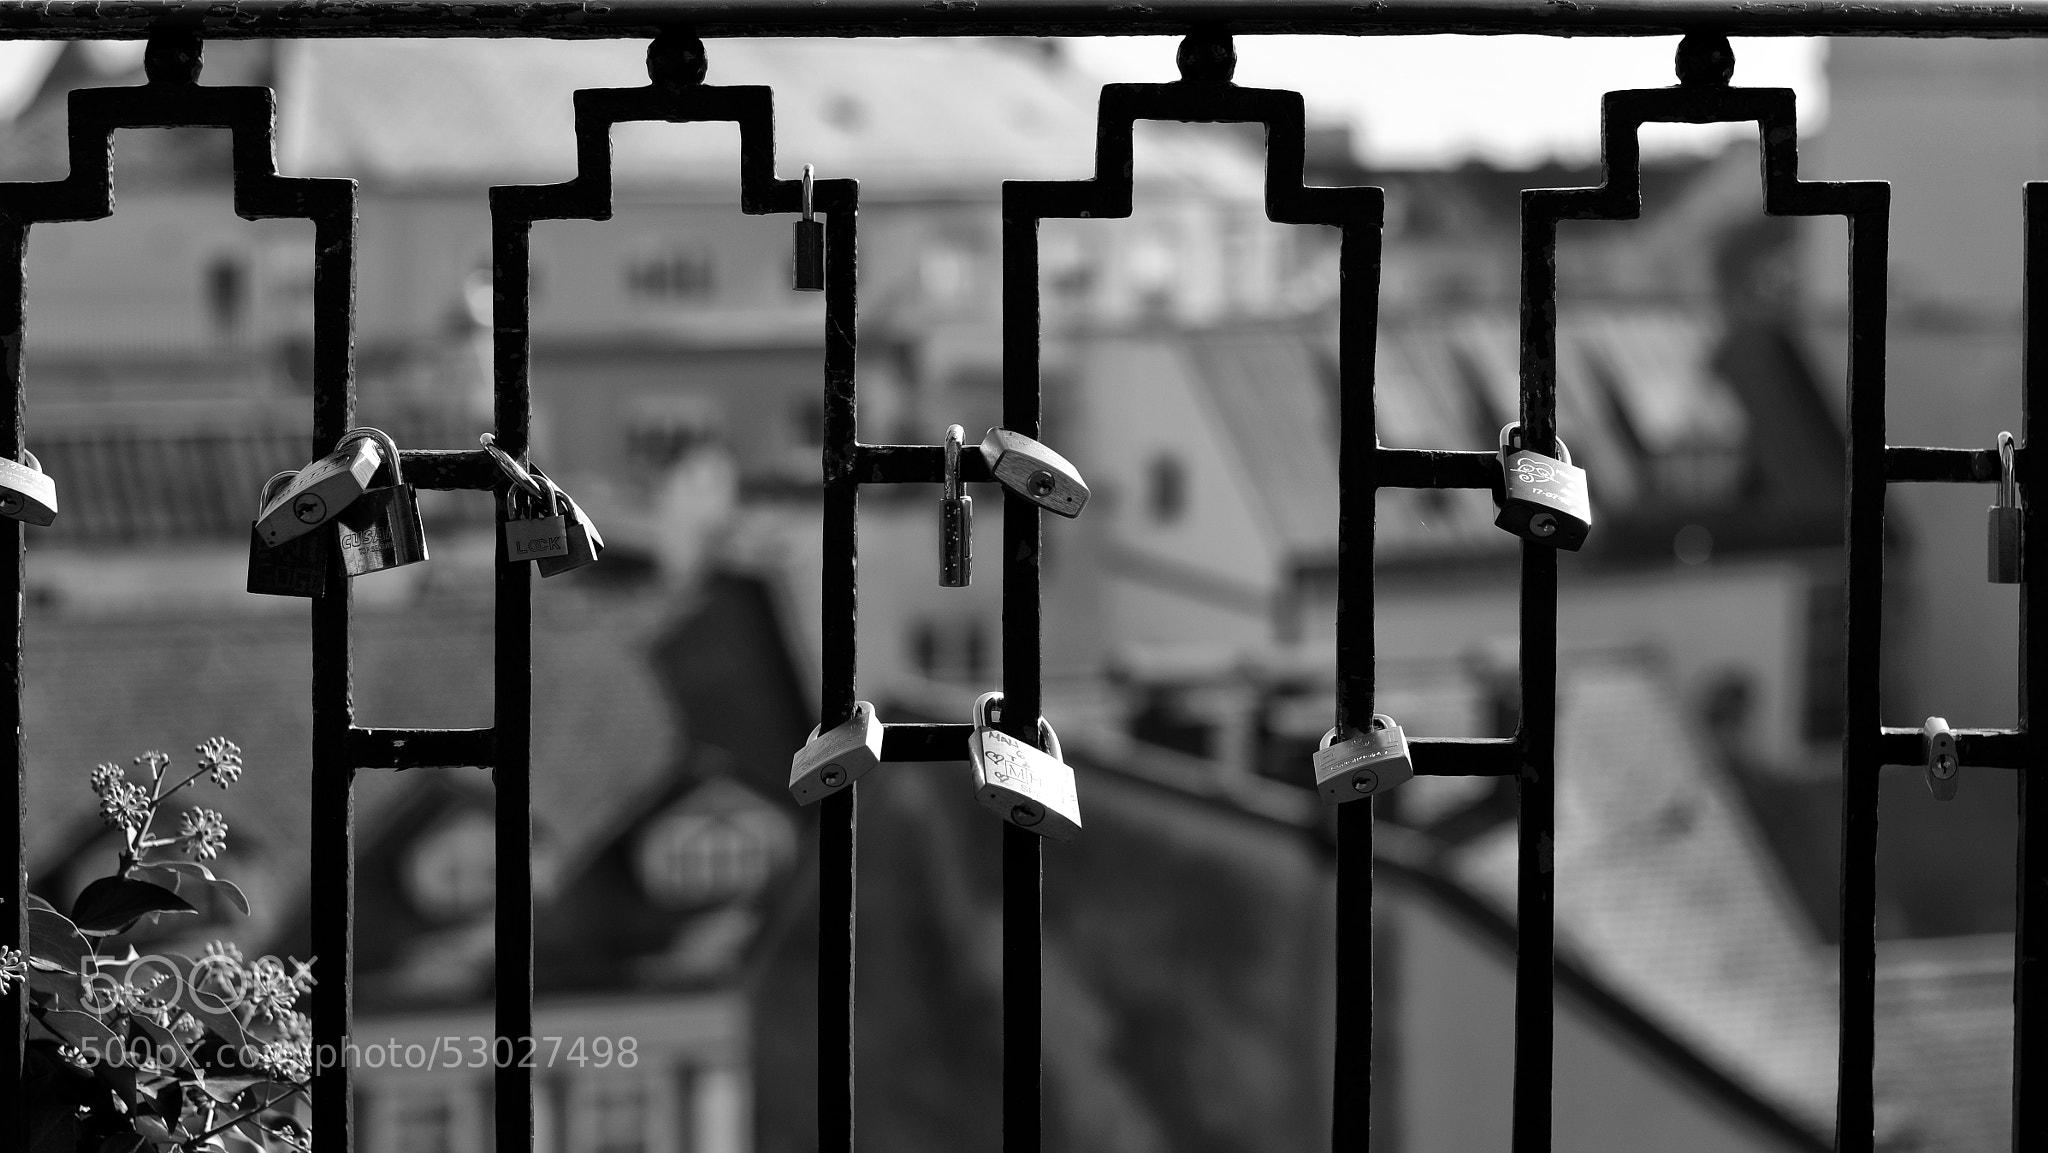 Photograph urban fragments by Teo Gasparovic on 500px